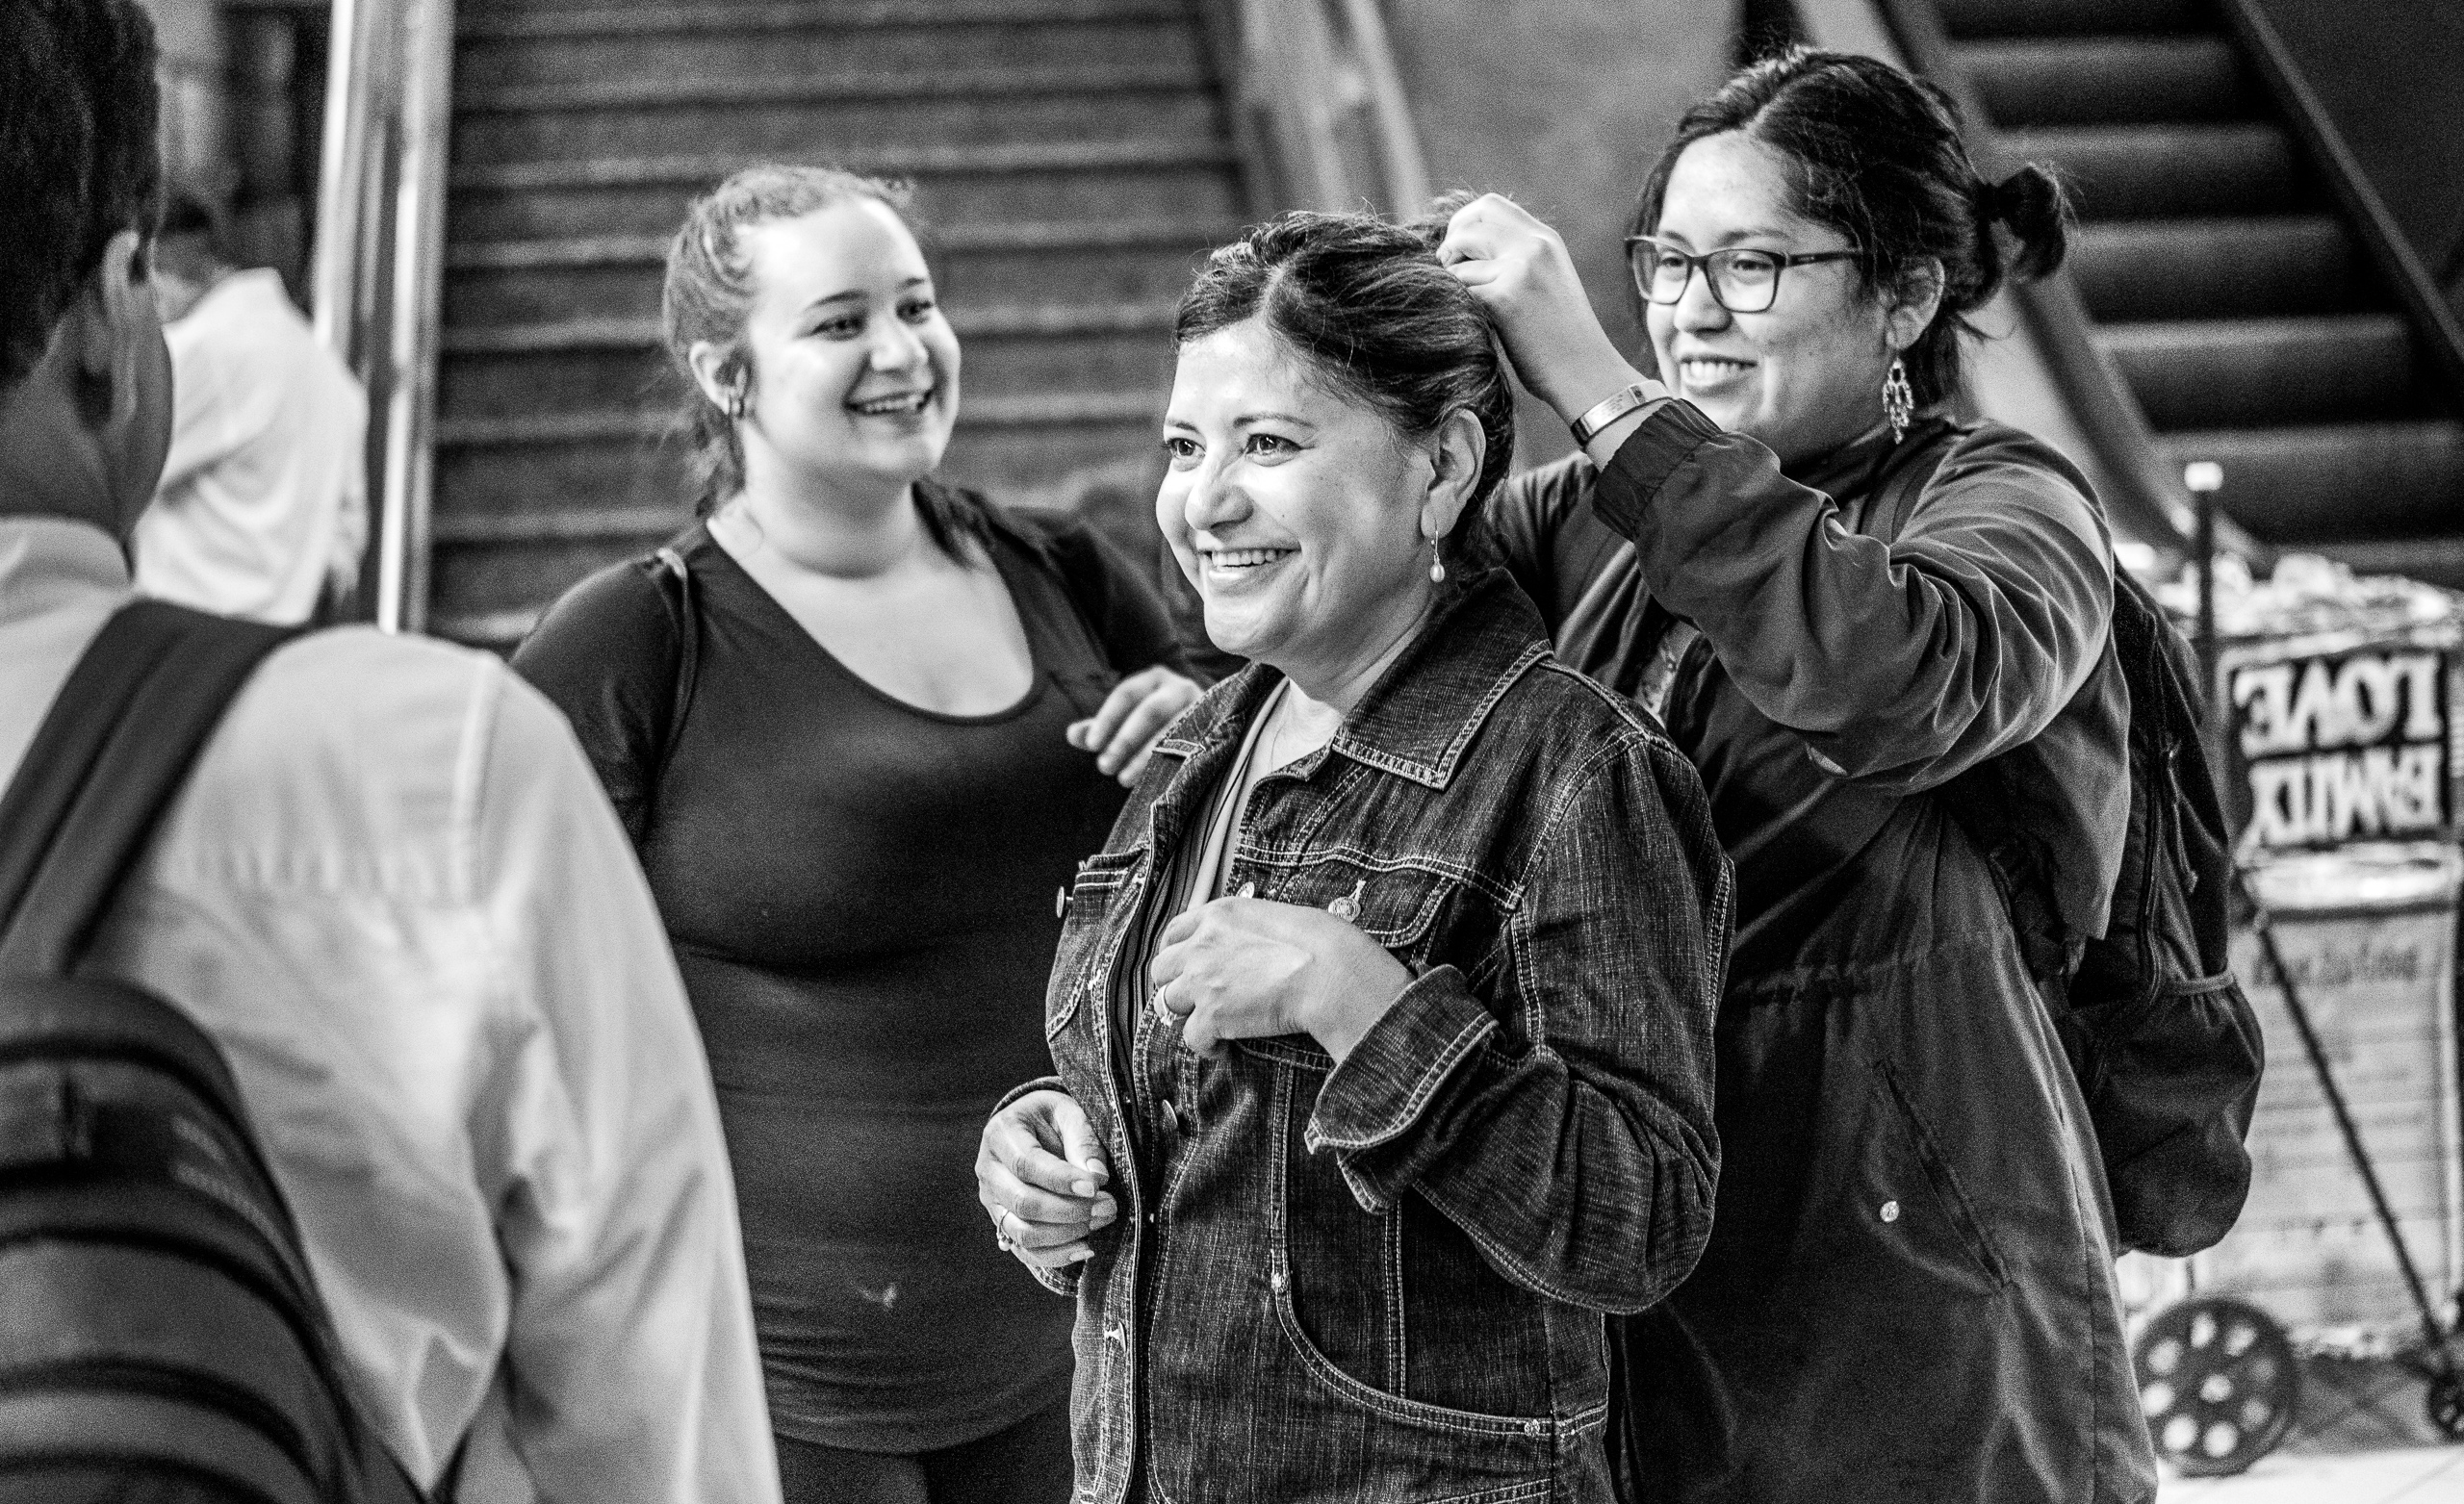 one woman puts another woman's hair up in a ponytail as 2 other friends look on and smile